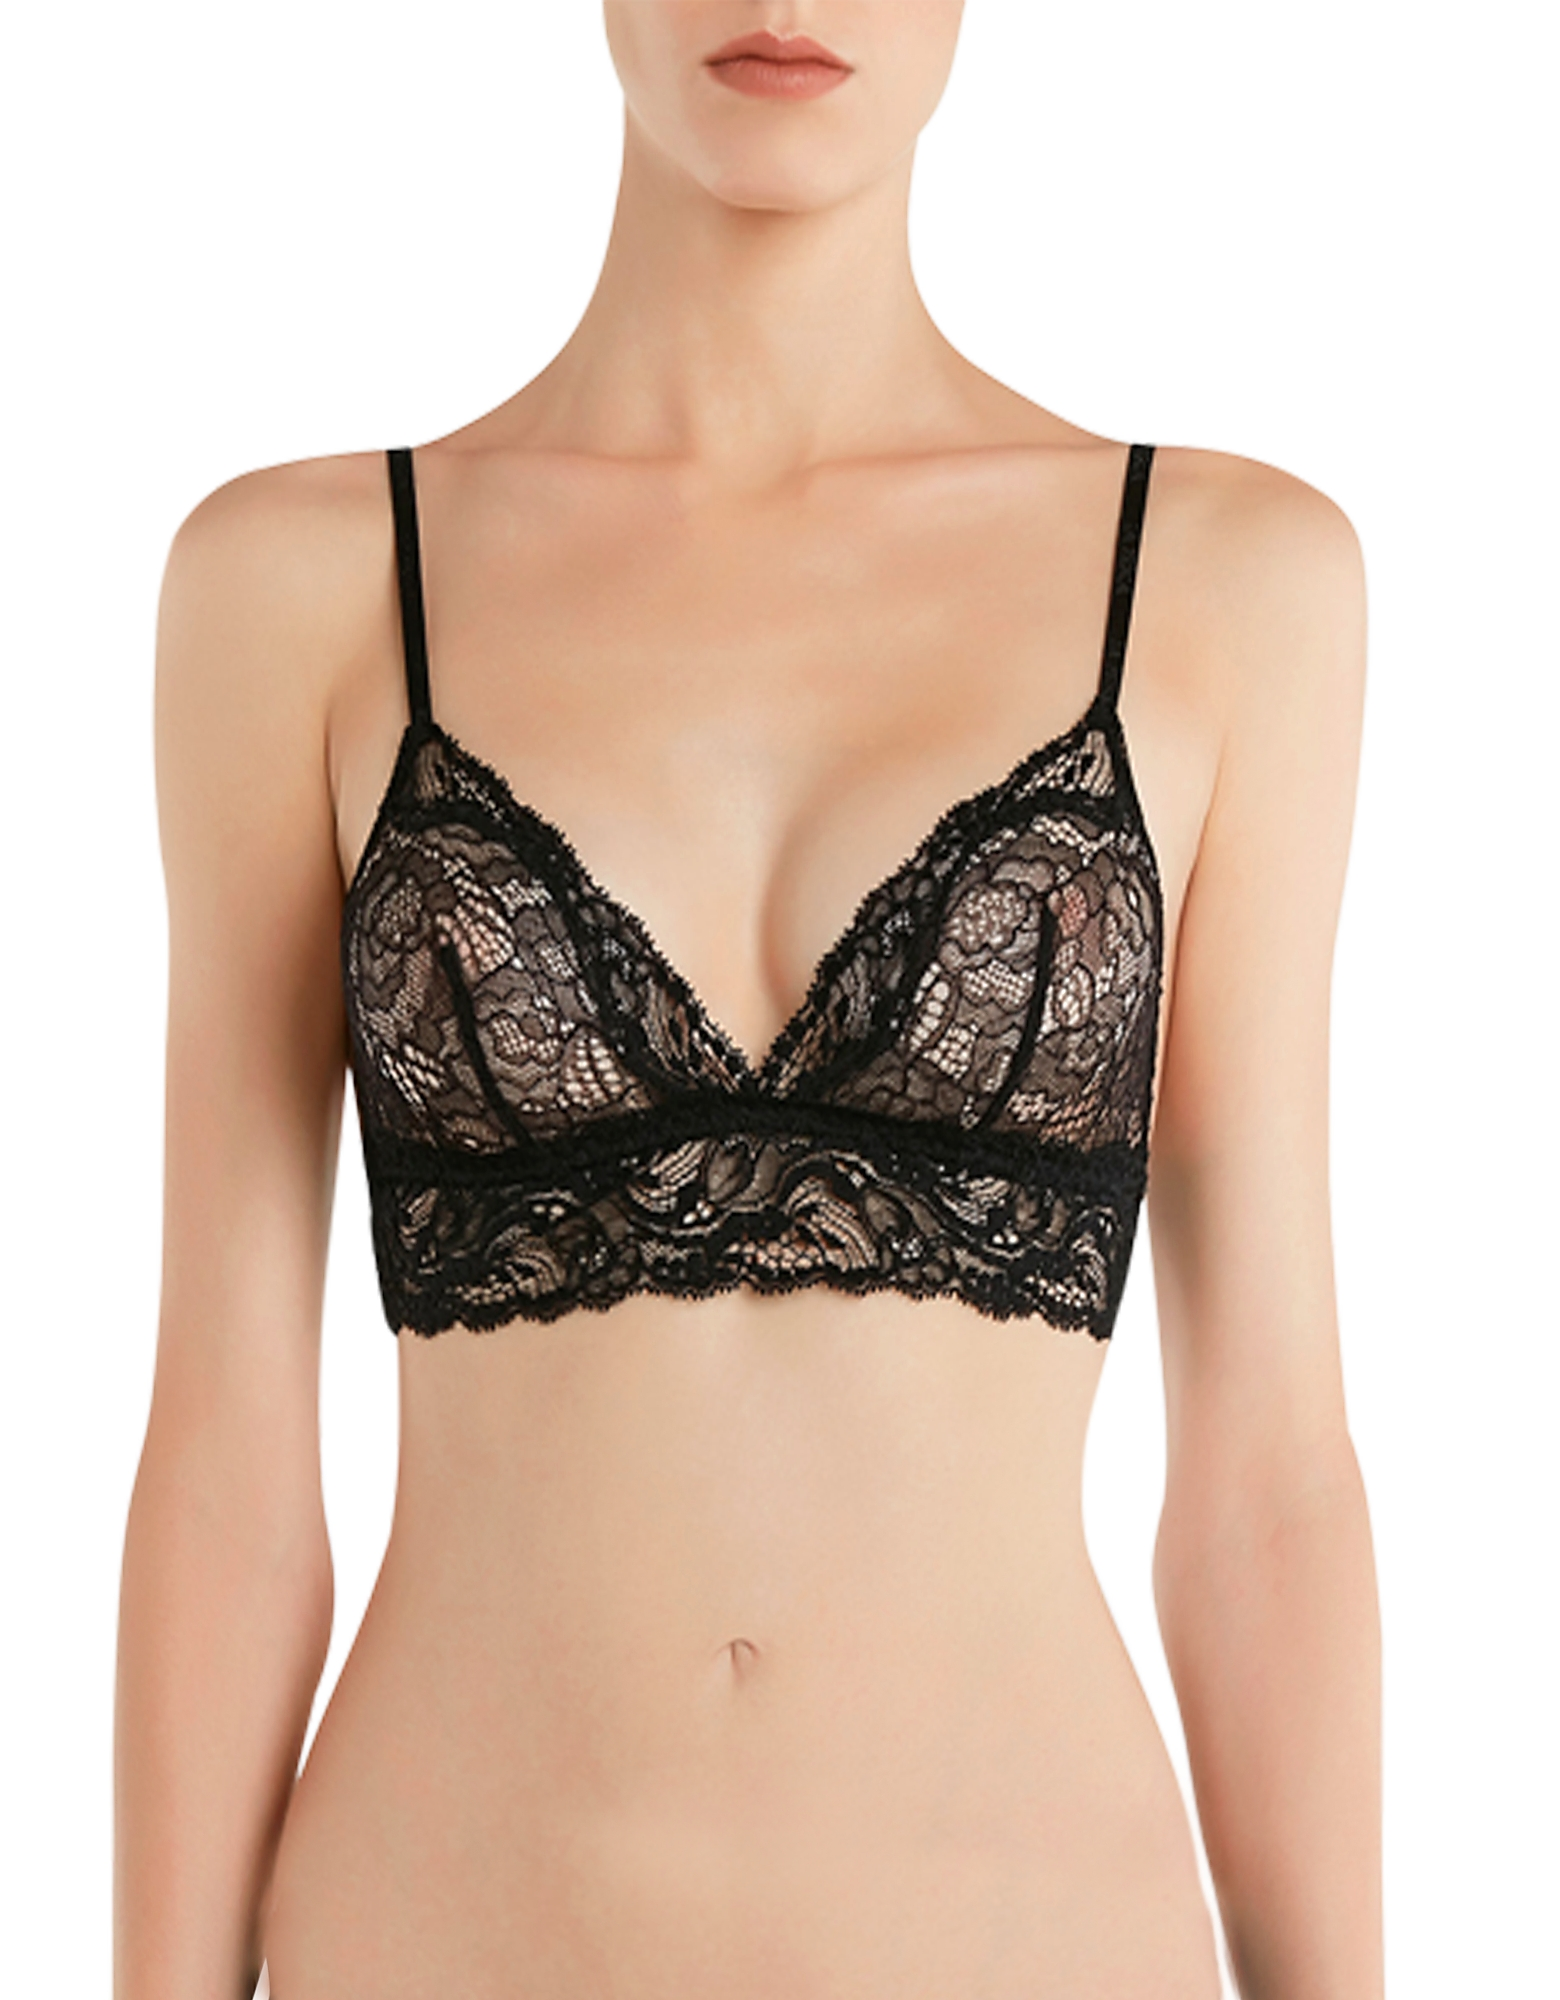 La Perla Bras, Freedom Black Stretch Leavers Lace Triangle Bra